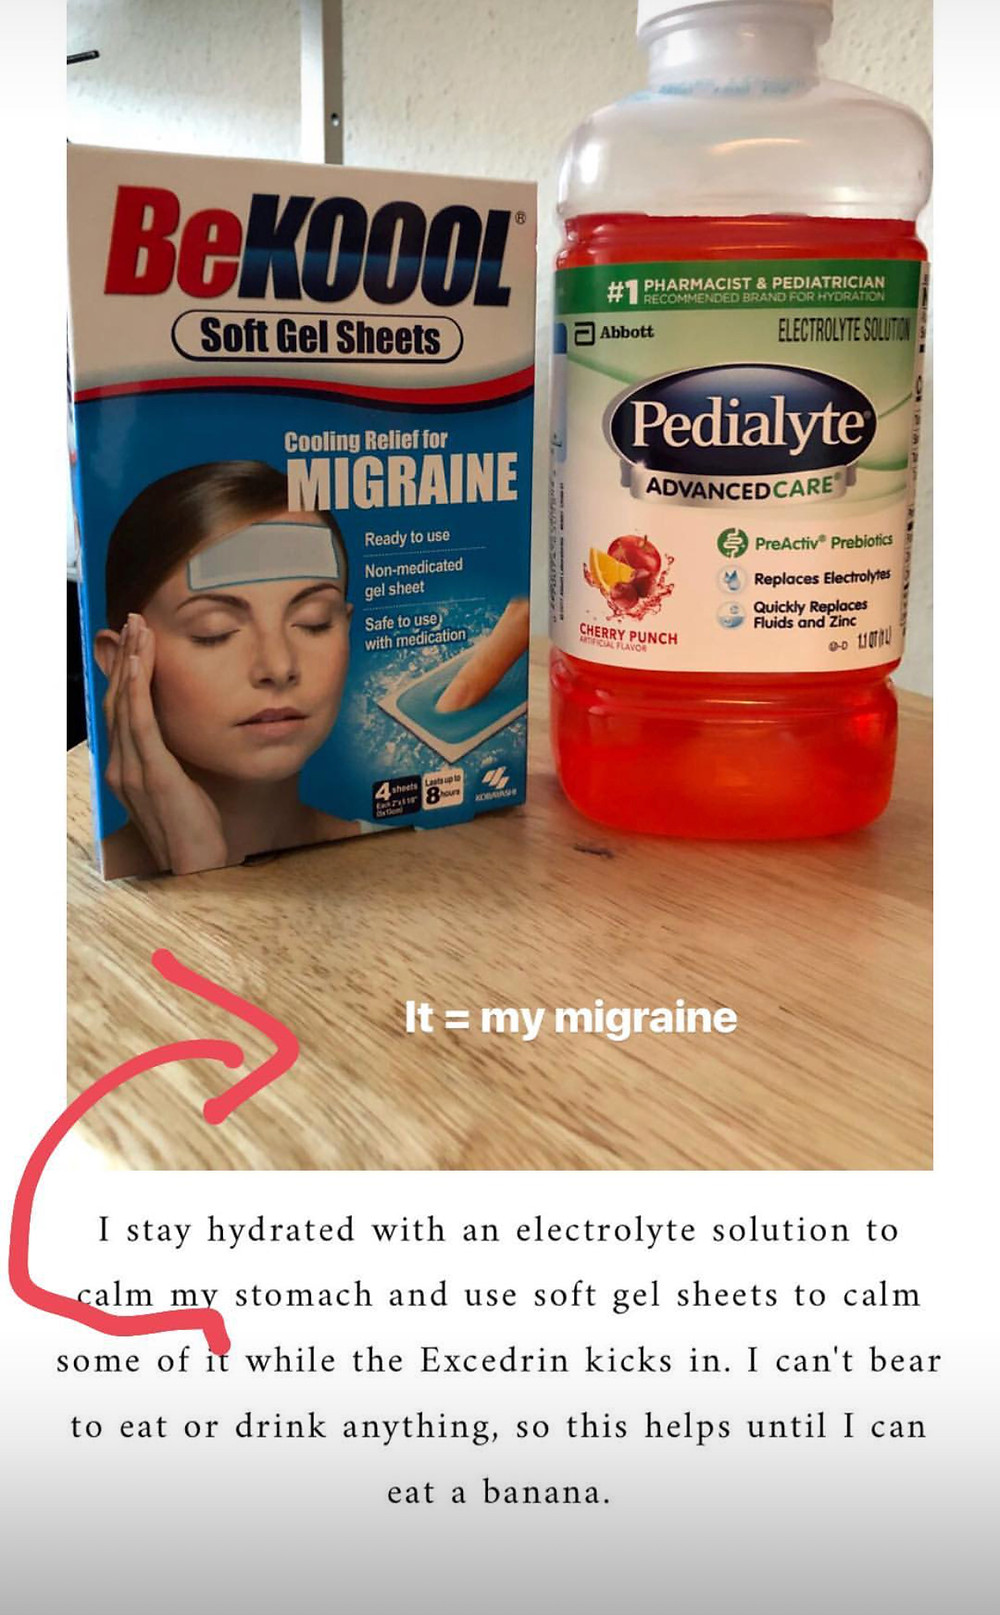 bekool gel migraine patches and pedialyte